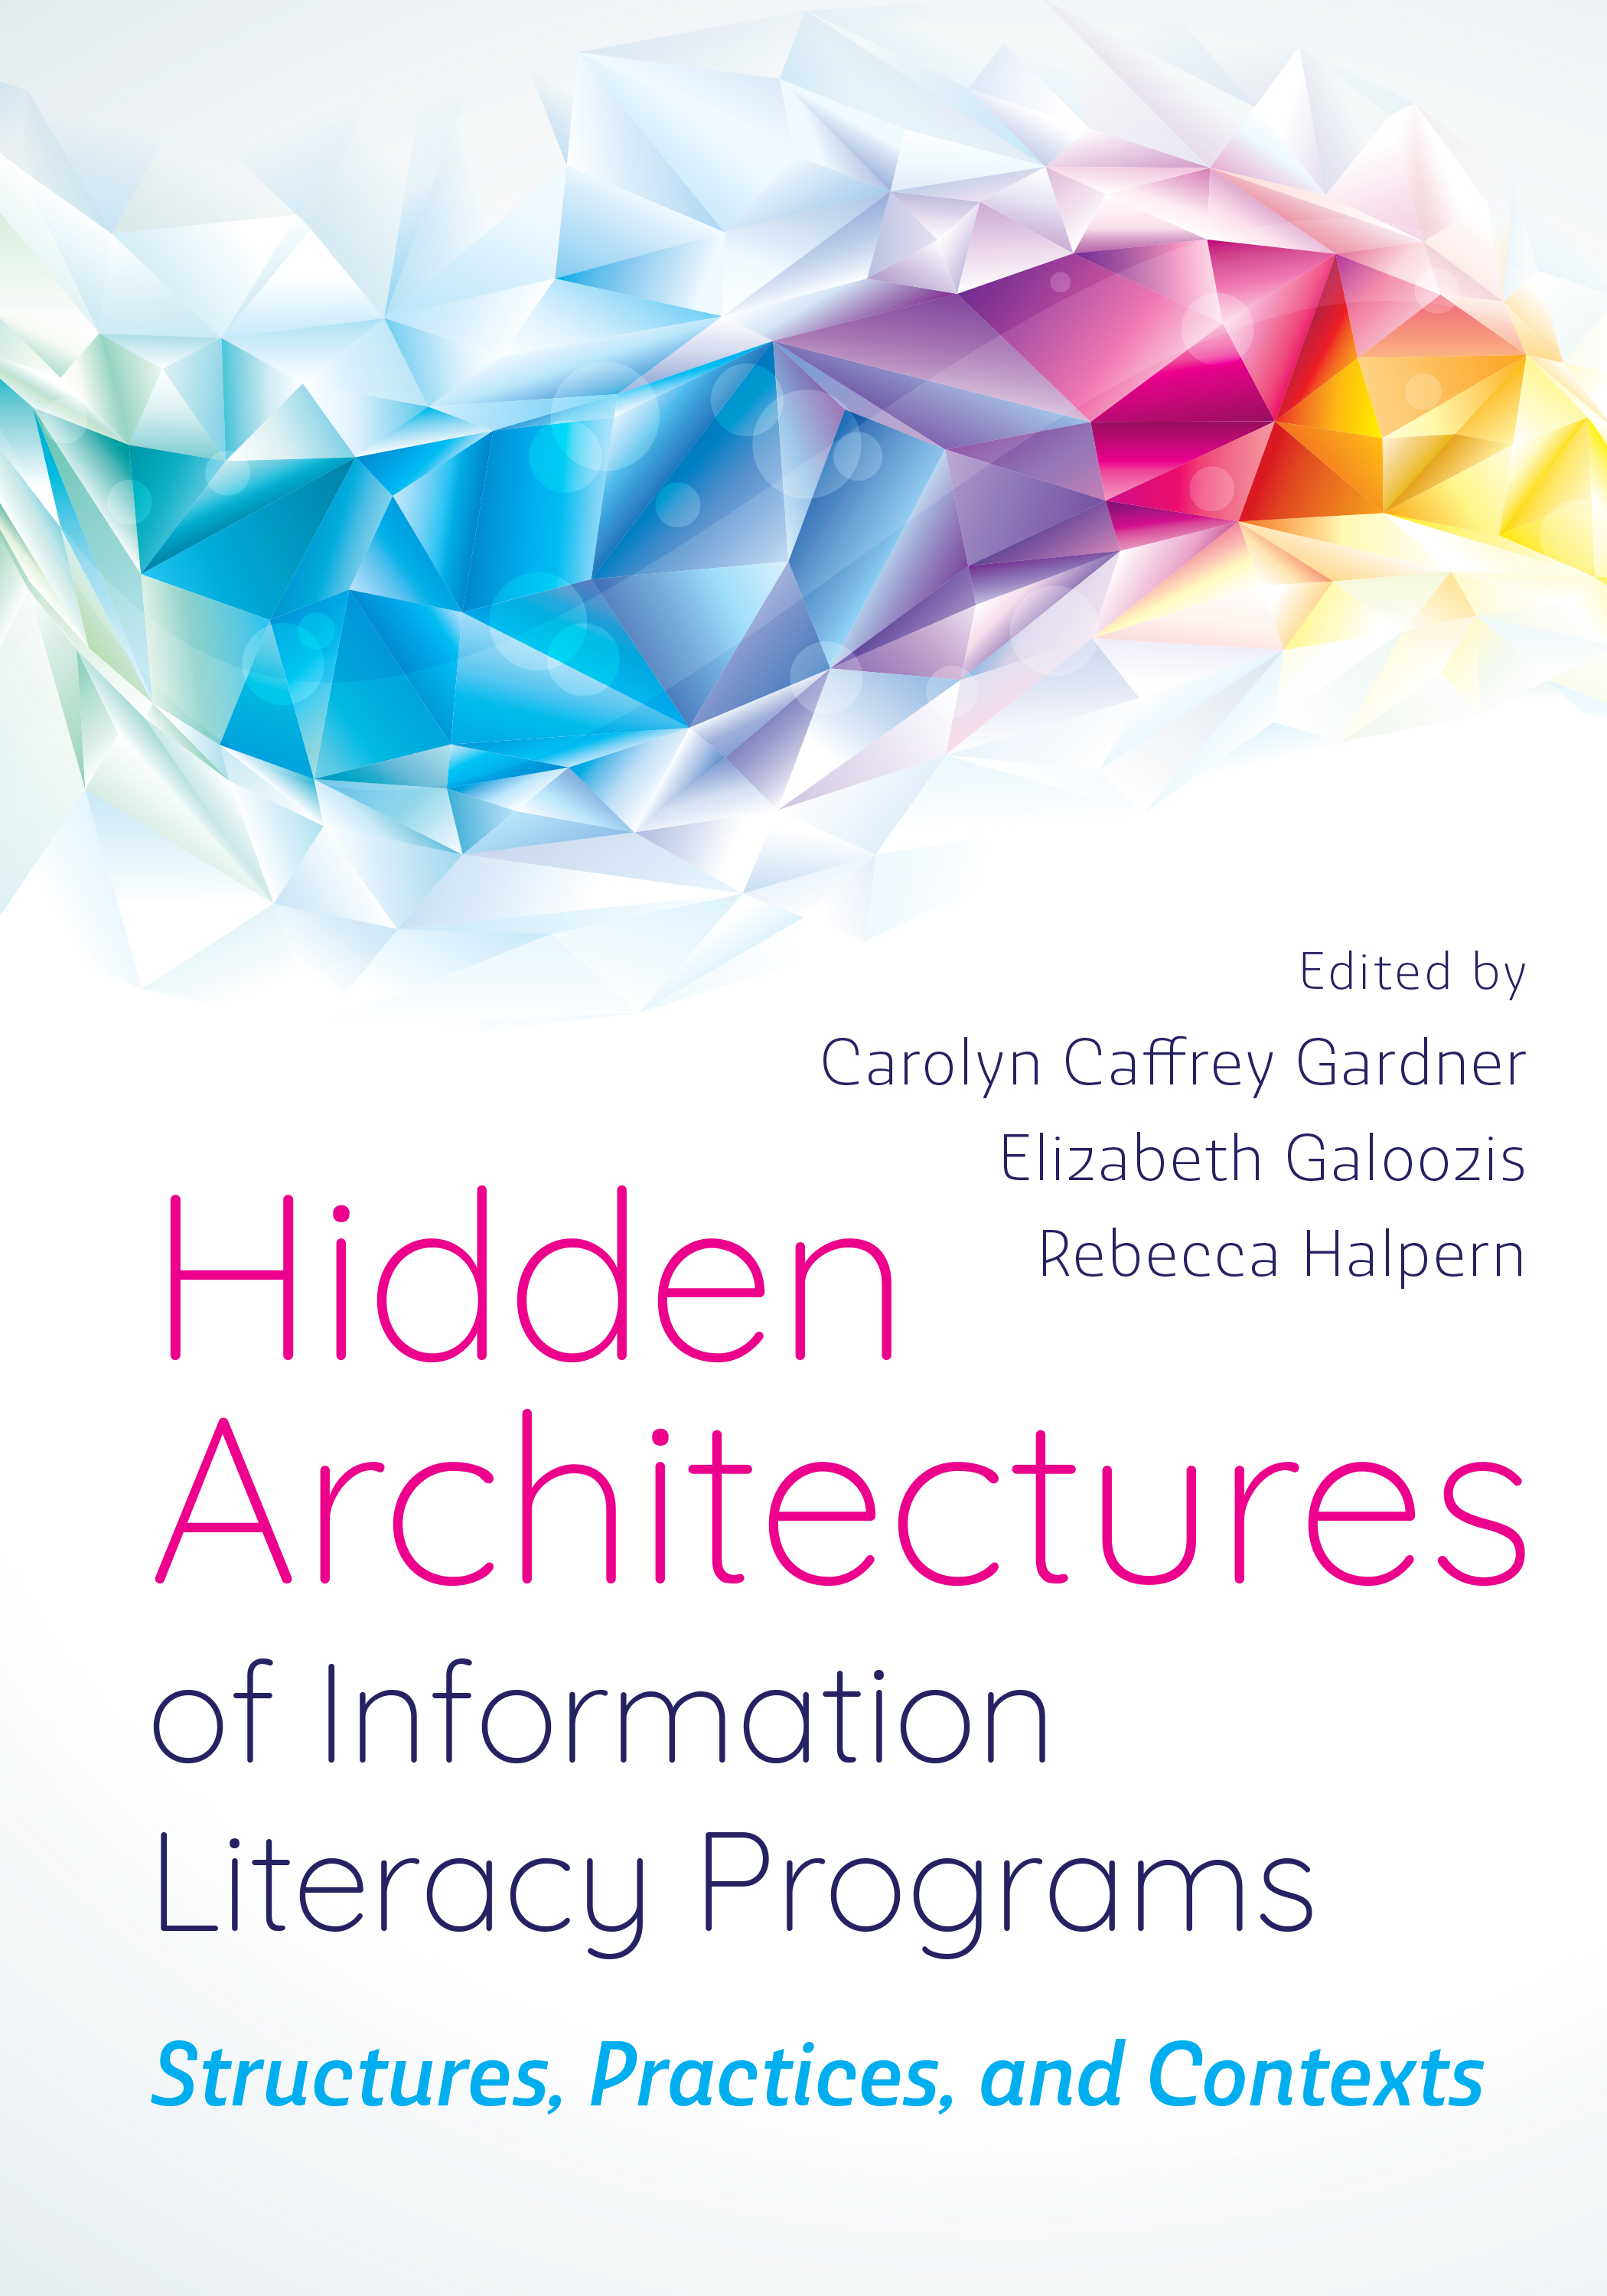 Image for Hidden Architectures of Information Literacy Programs: Structures, Practices, and Contexts